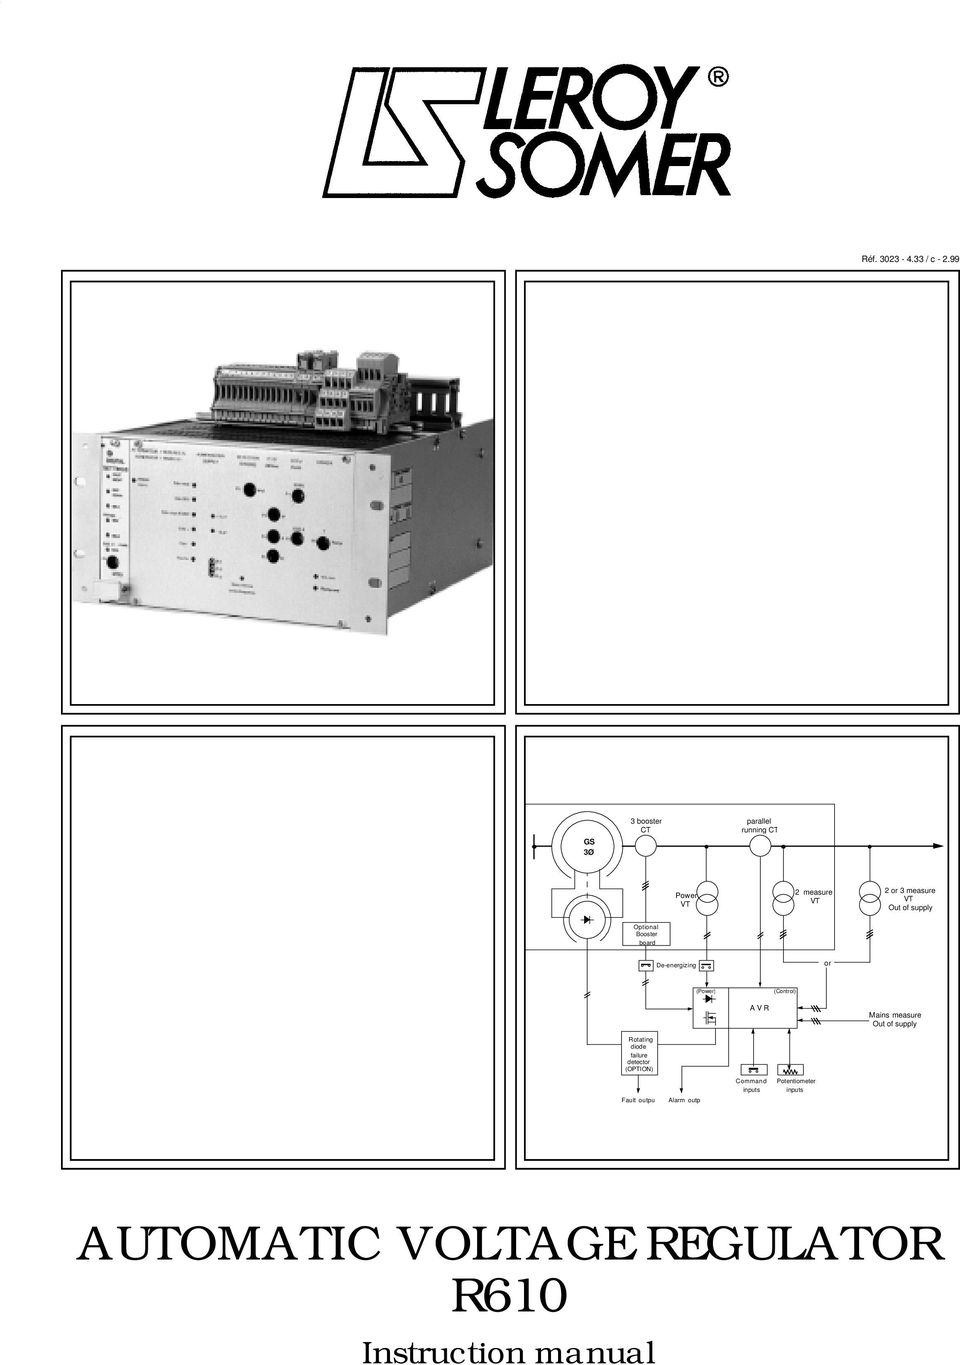 Automatic Voltage Regulator R610 Pdf Contactless Ac Mains Detector Circuit Diagram Supply Optional Booster Board De Energizing Or Power Control A V R